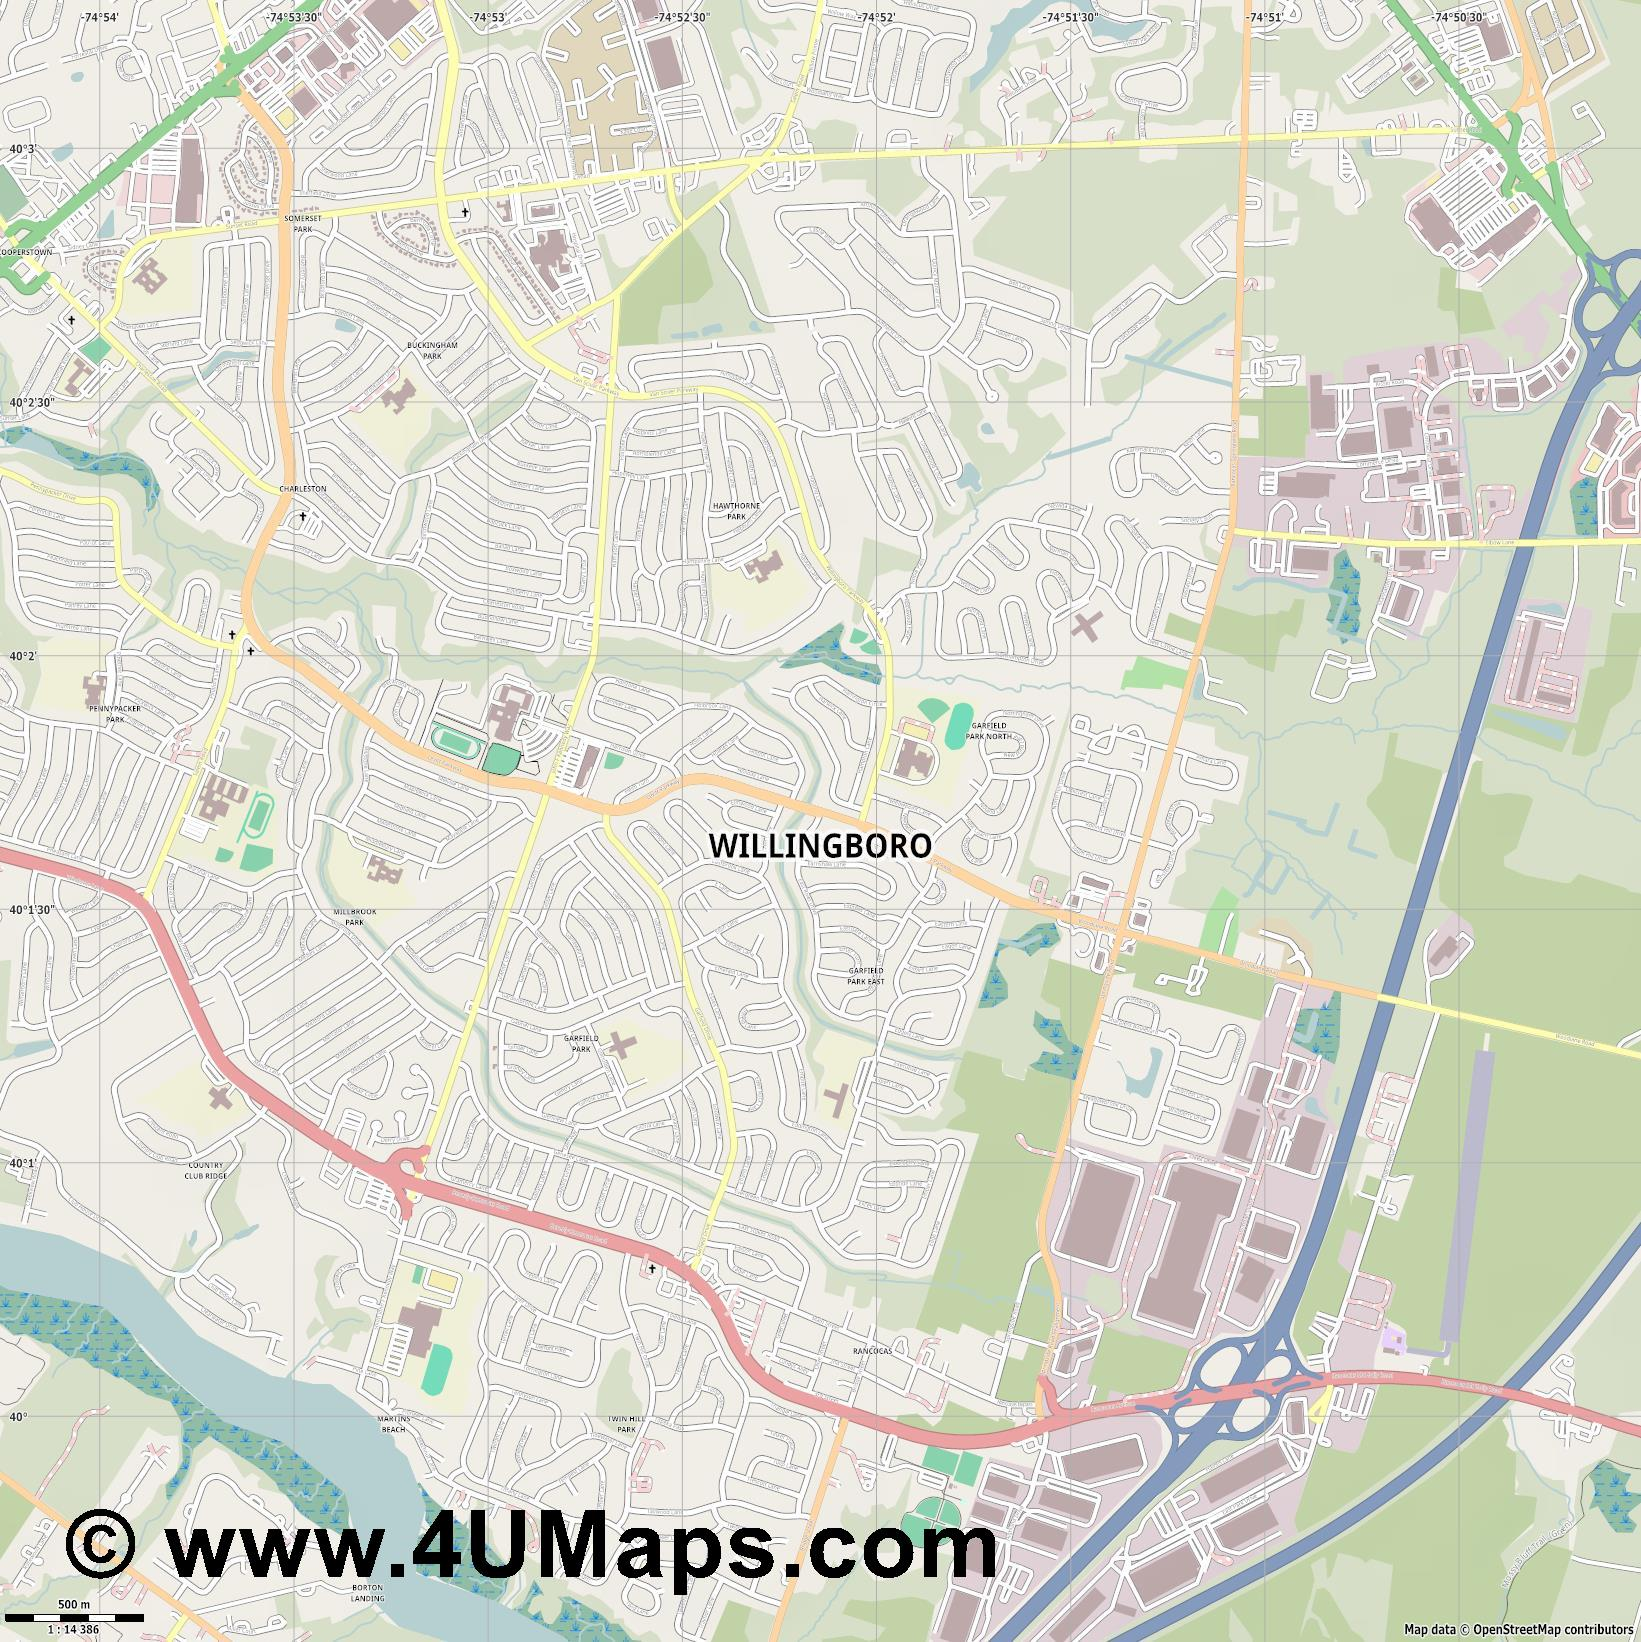 Willingboro  jpg ultra high detail preview vector city map